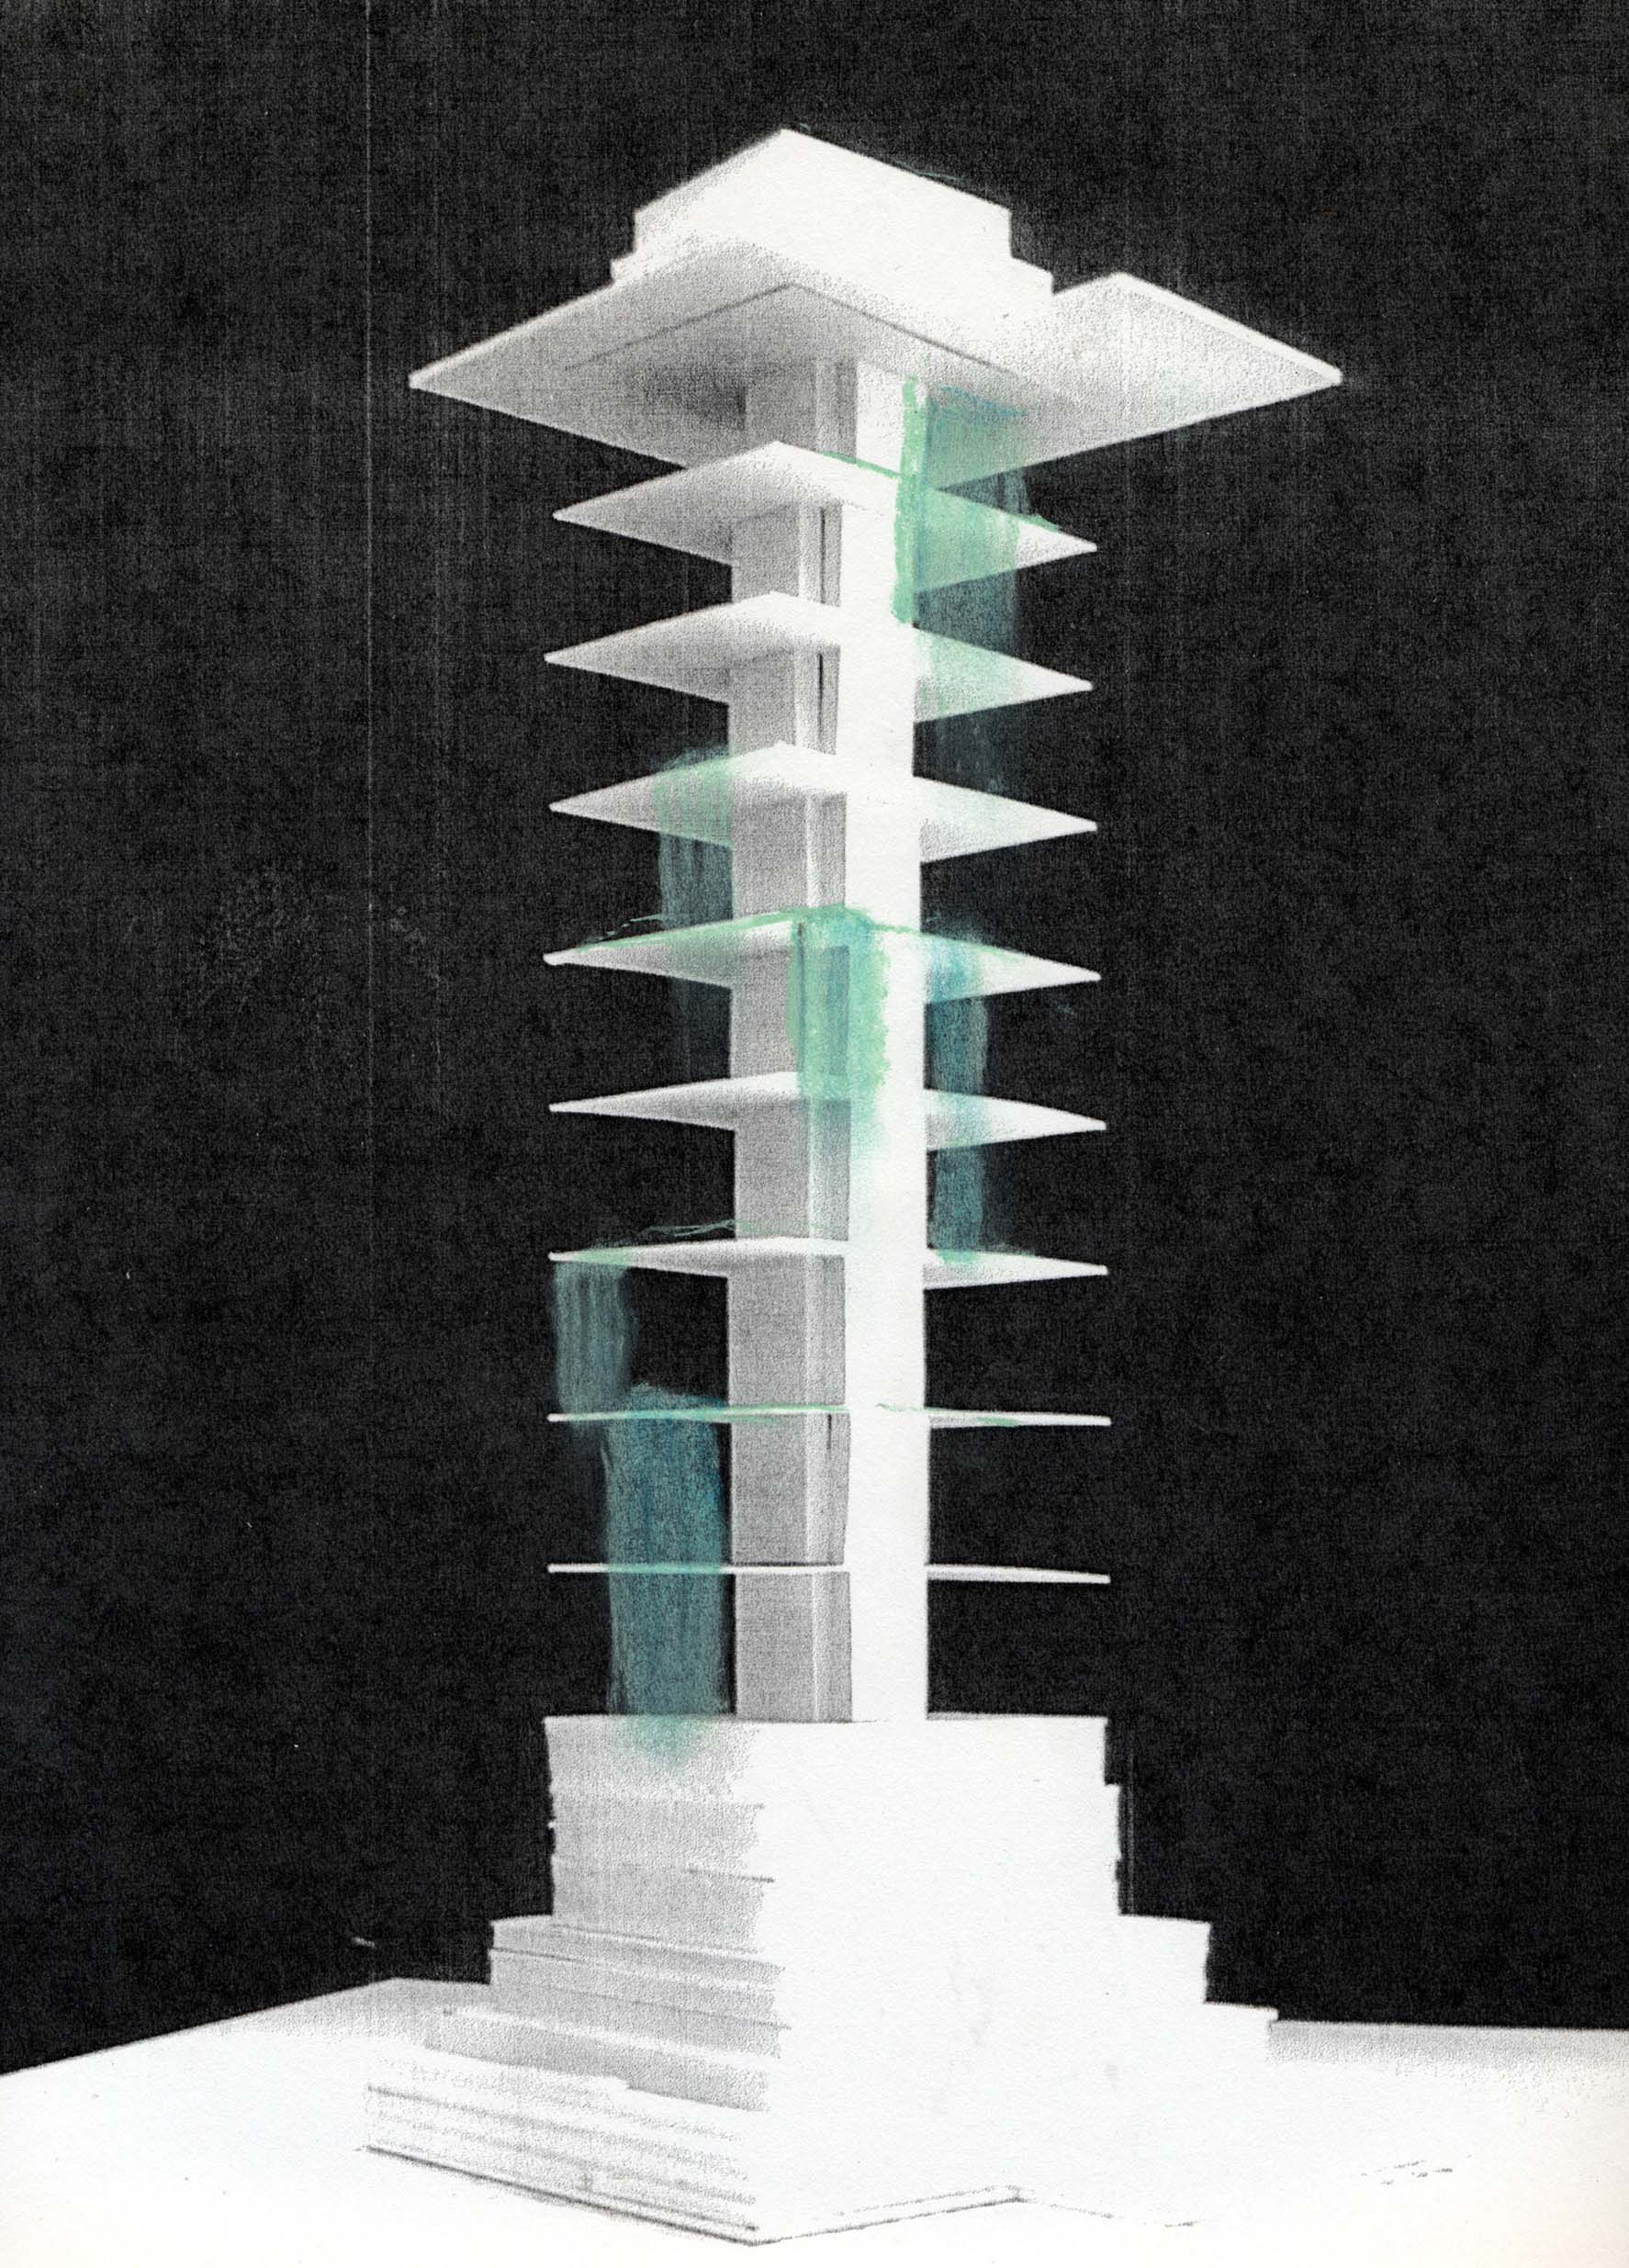 Monsoon water collection waterfalls, Concept for Residence Antilia, Mumbai 2004-